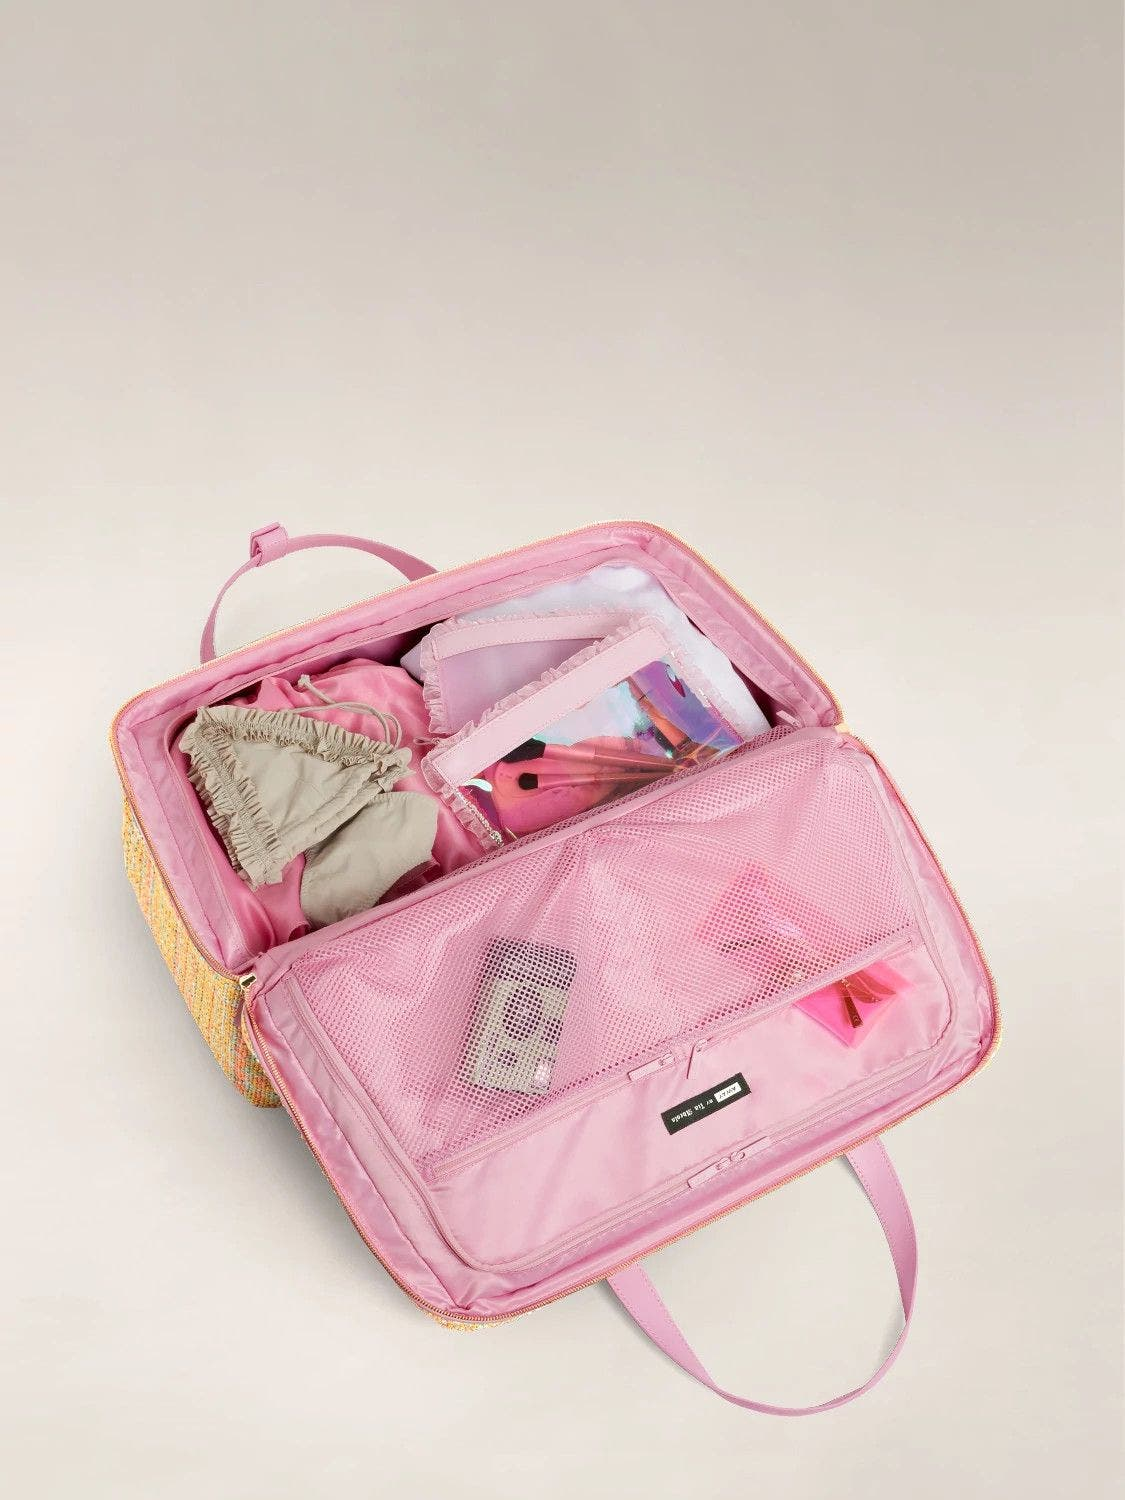 Open view of the Large Everywhere Bag by Tia Adeola